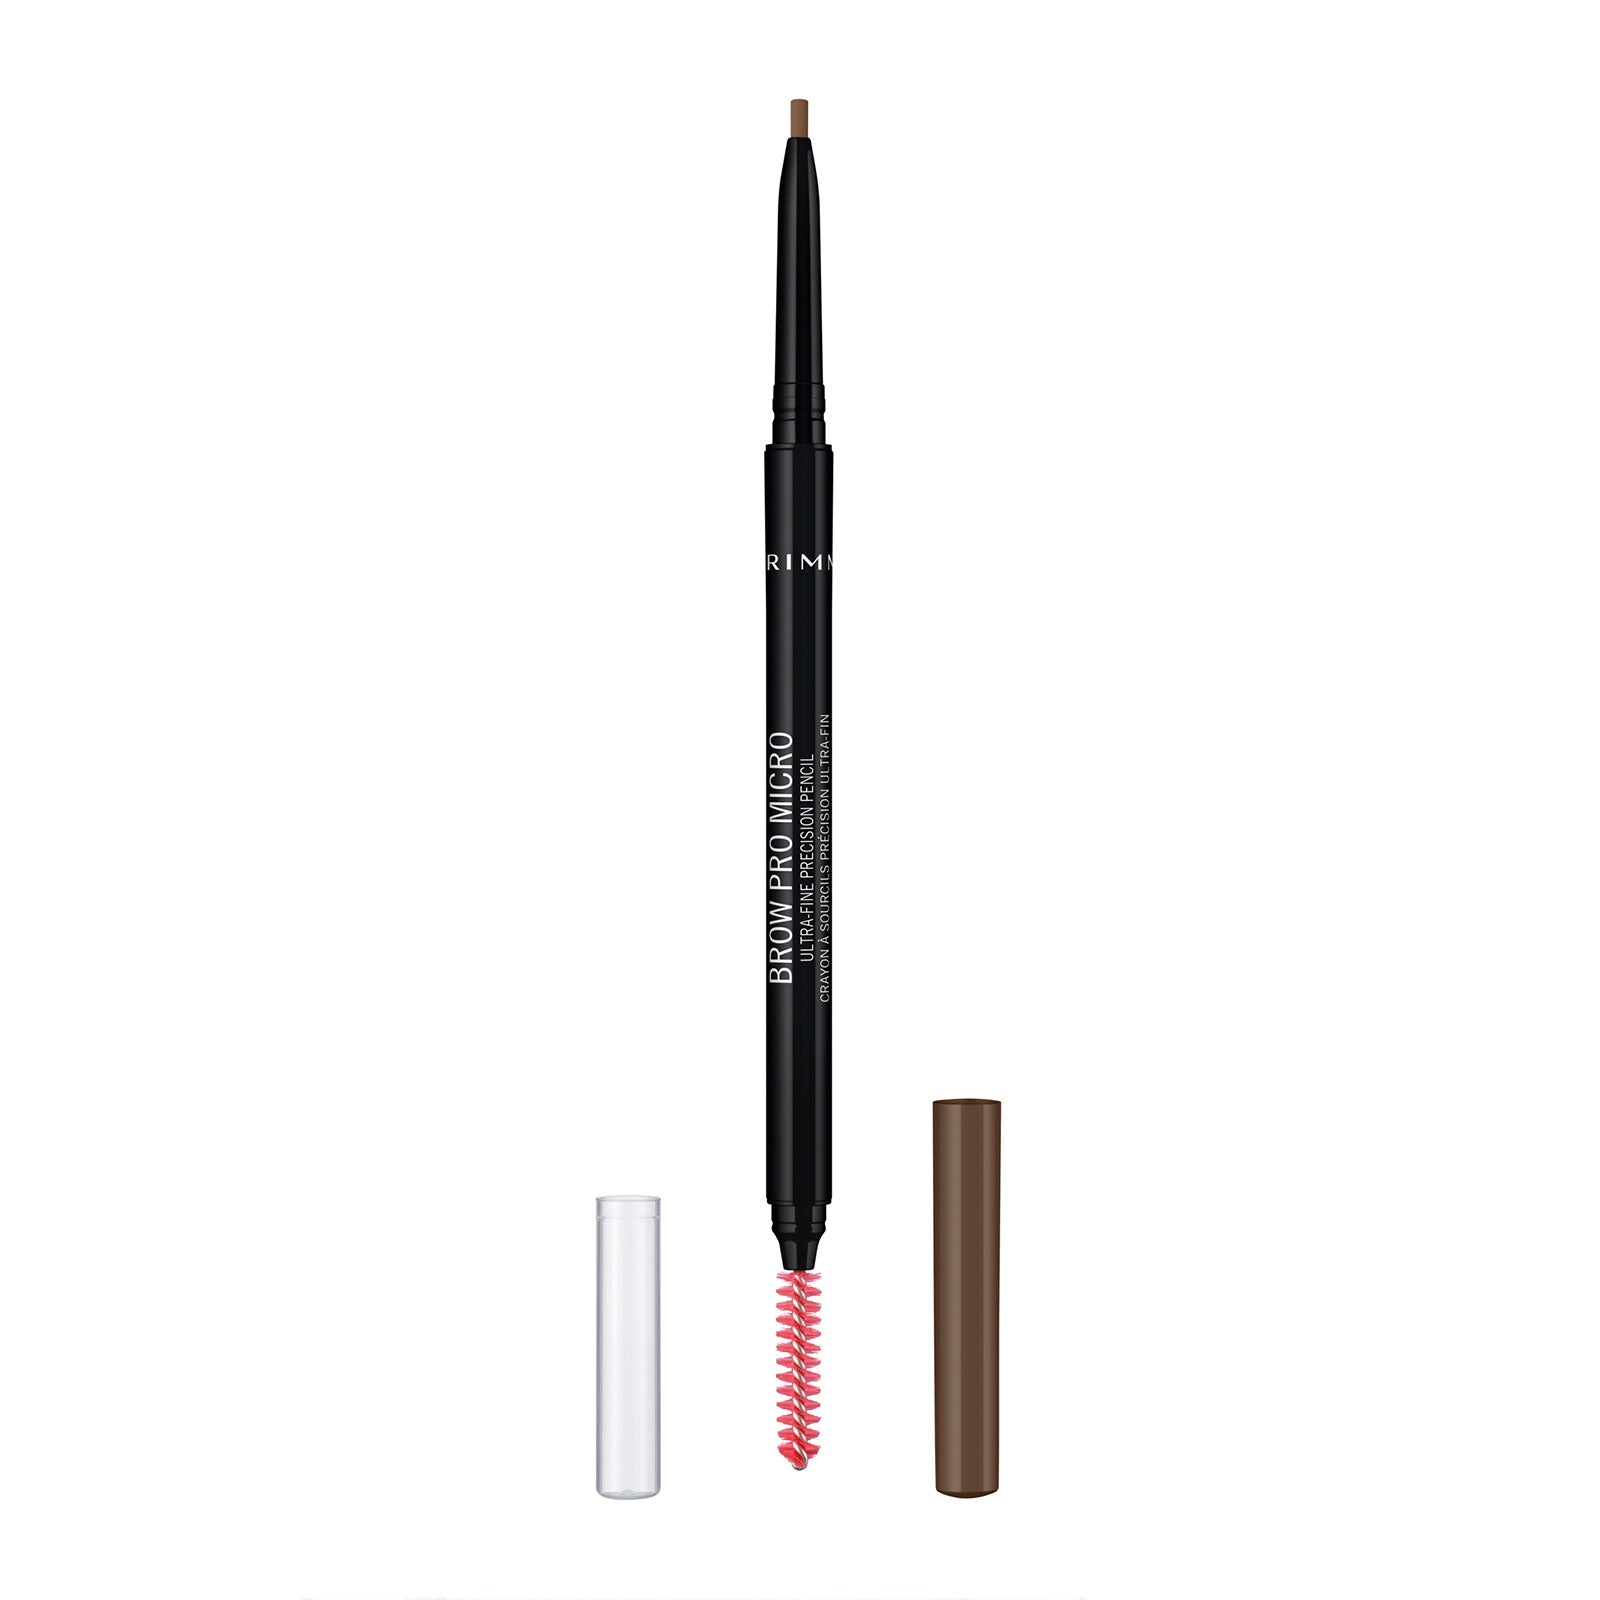 Rimmel Brow Pro Micro Ultra-Fine Precision Pencil 0.9g